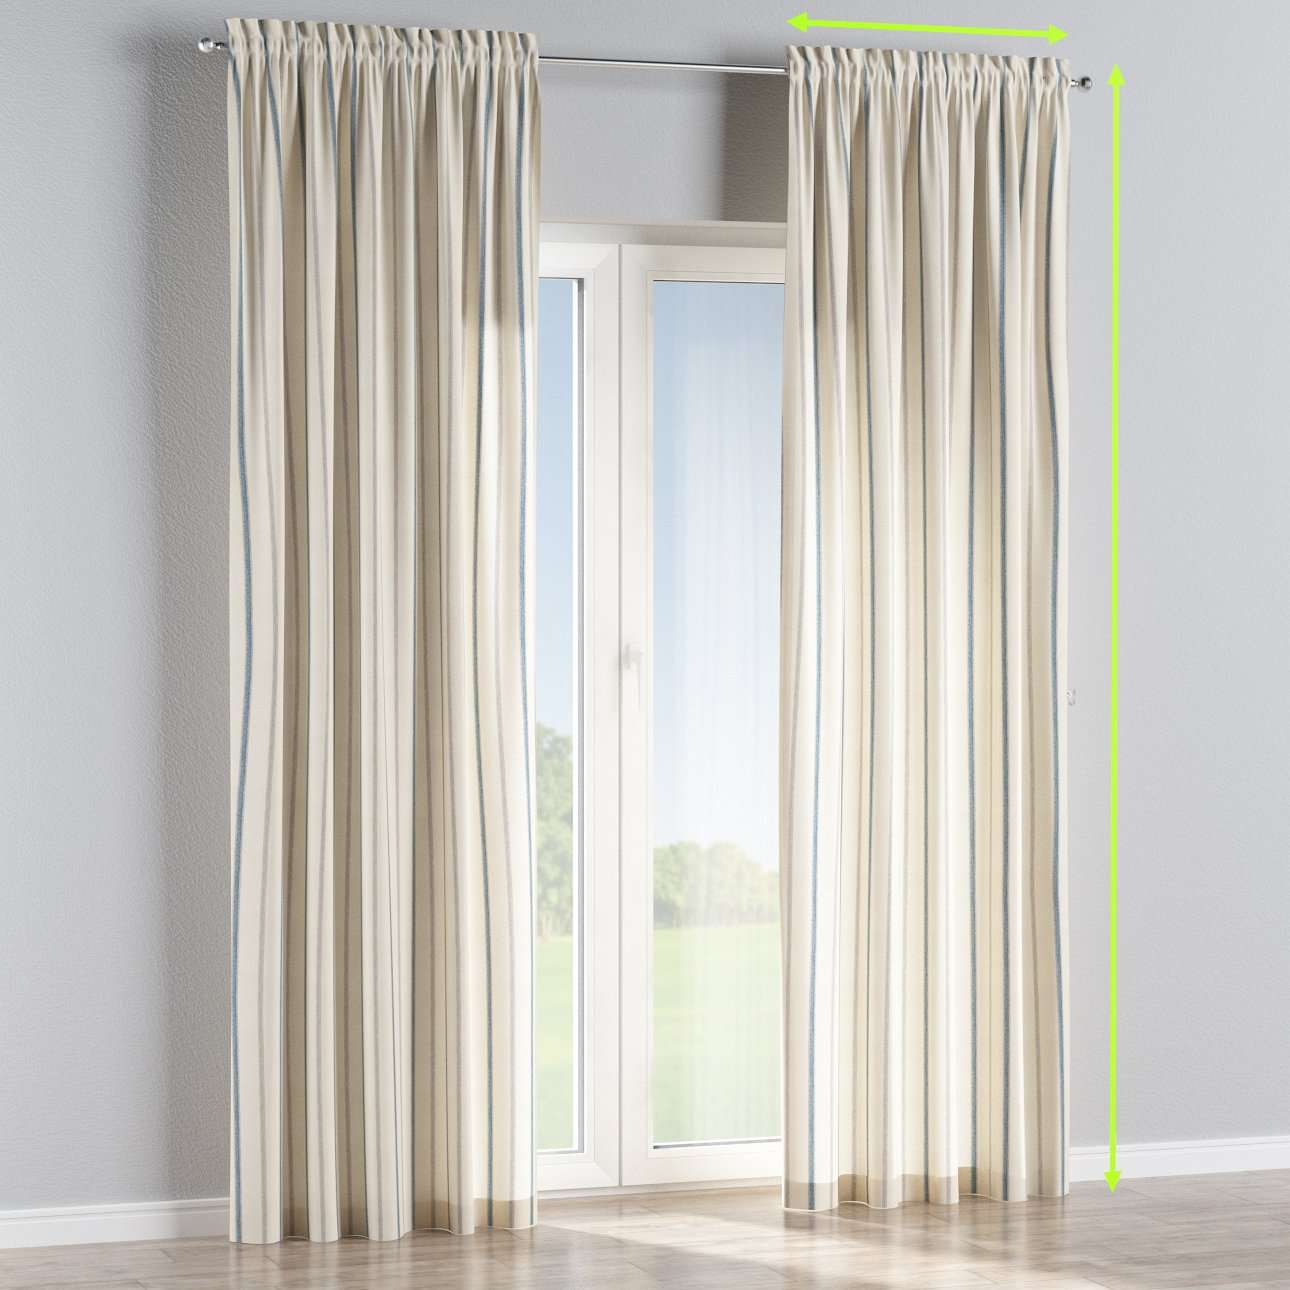 Slot and frill curtains in collection Avinon, fabric: 129-66